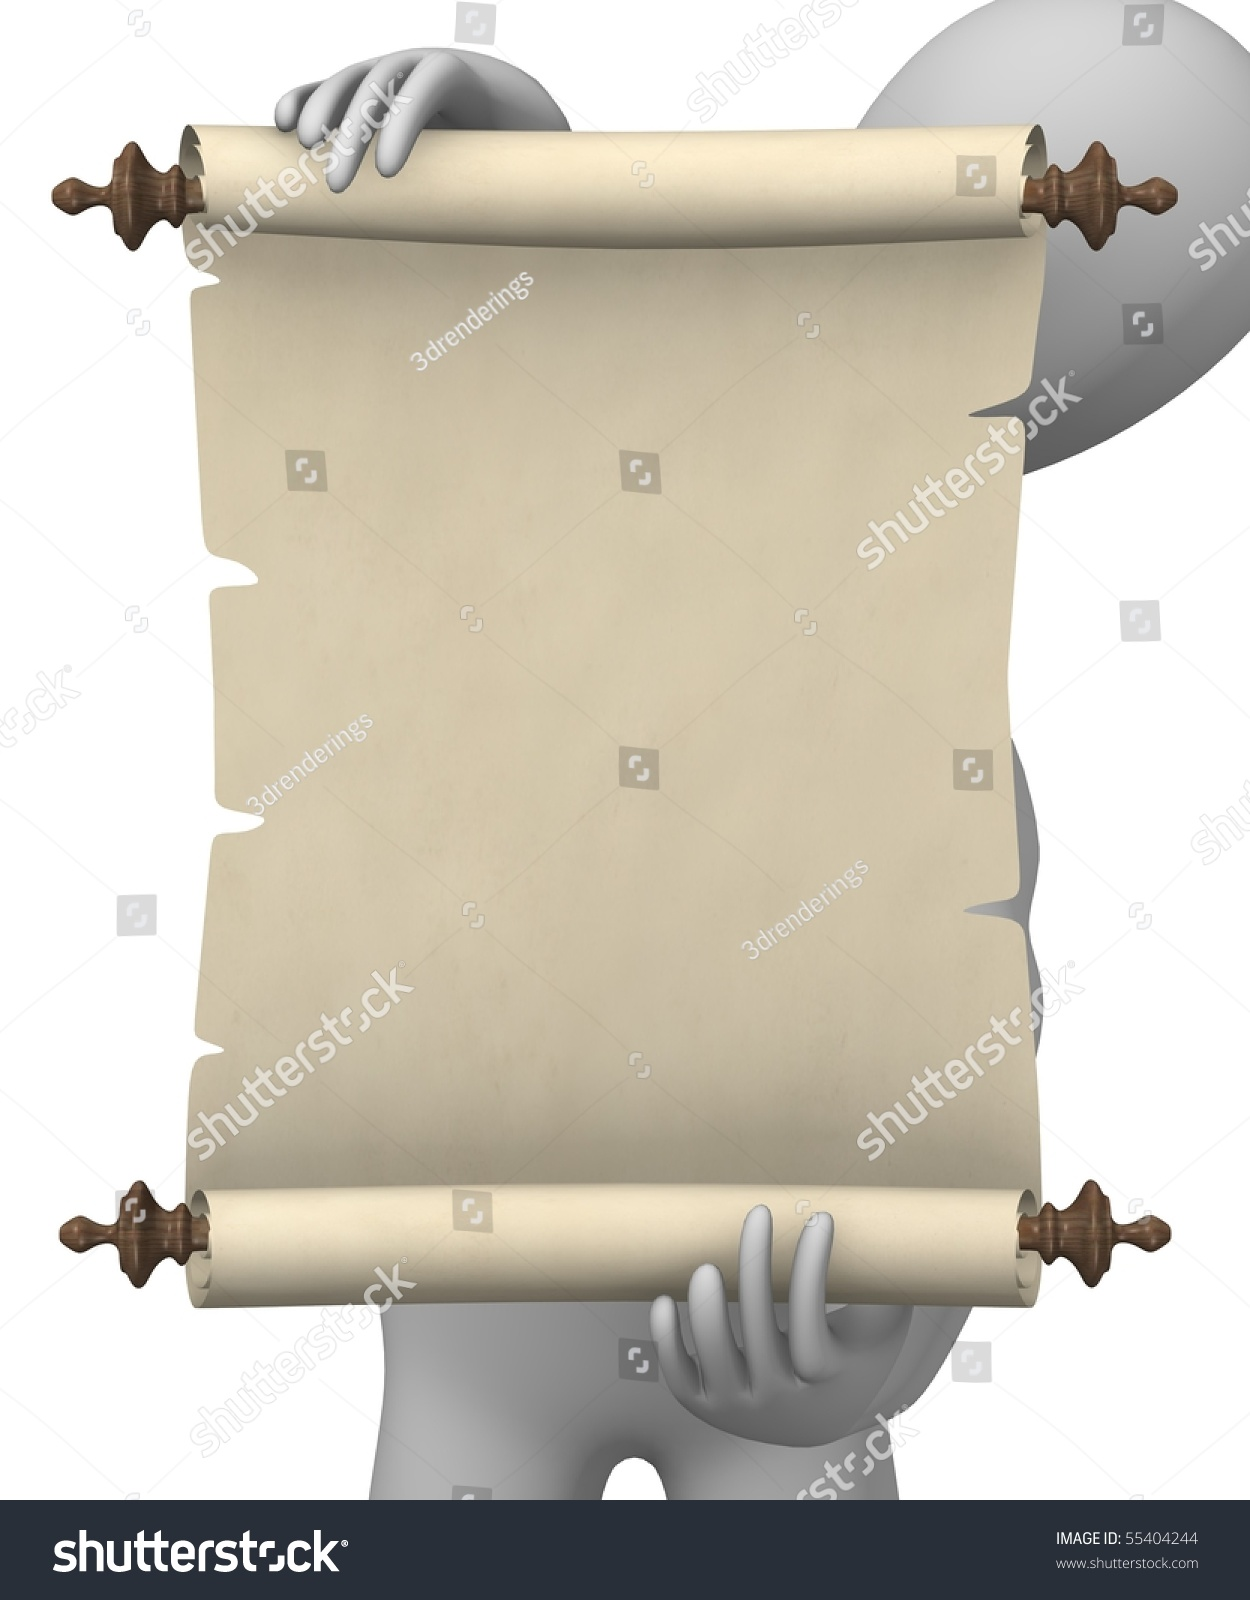 3d Scroll Of Parchment Photo: 3d Render Of Cartoon Character With Scroll Stock Photo